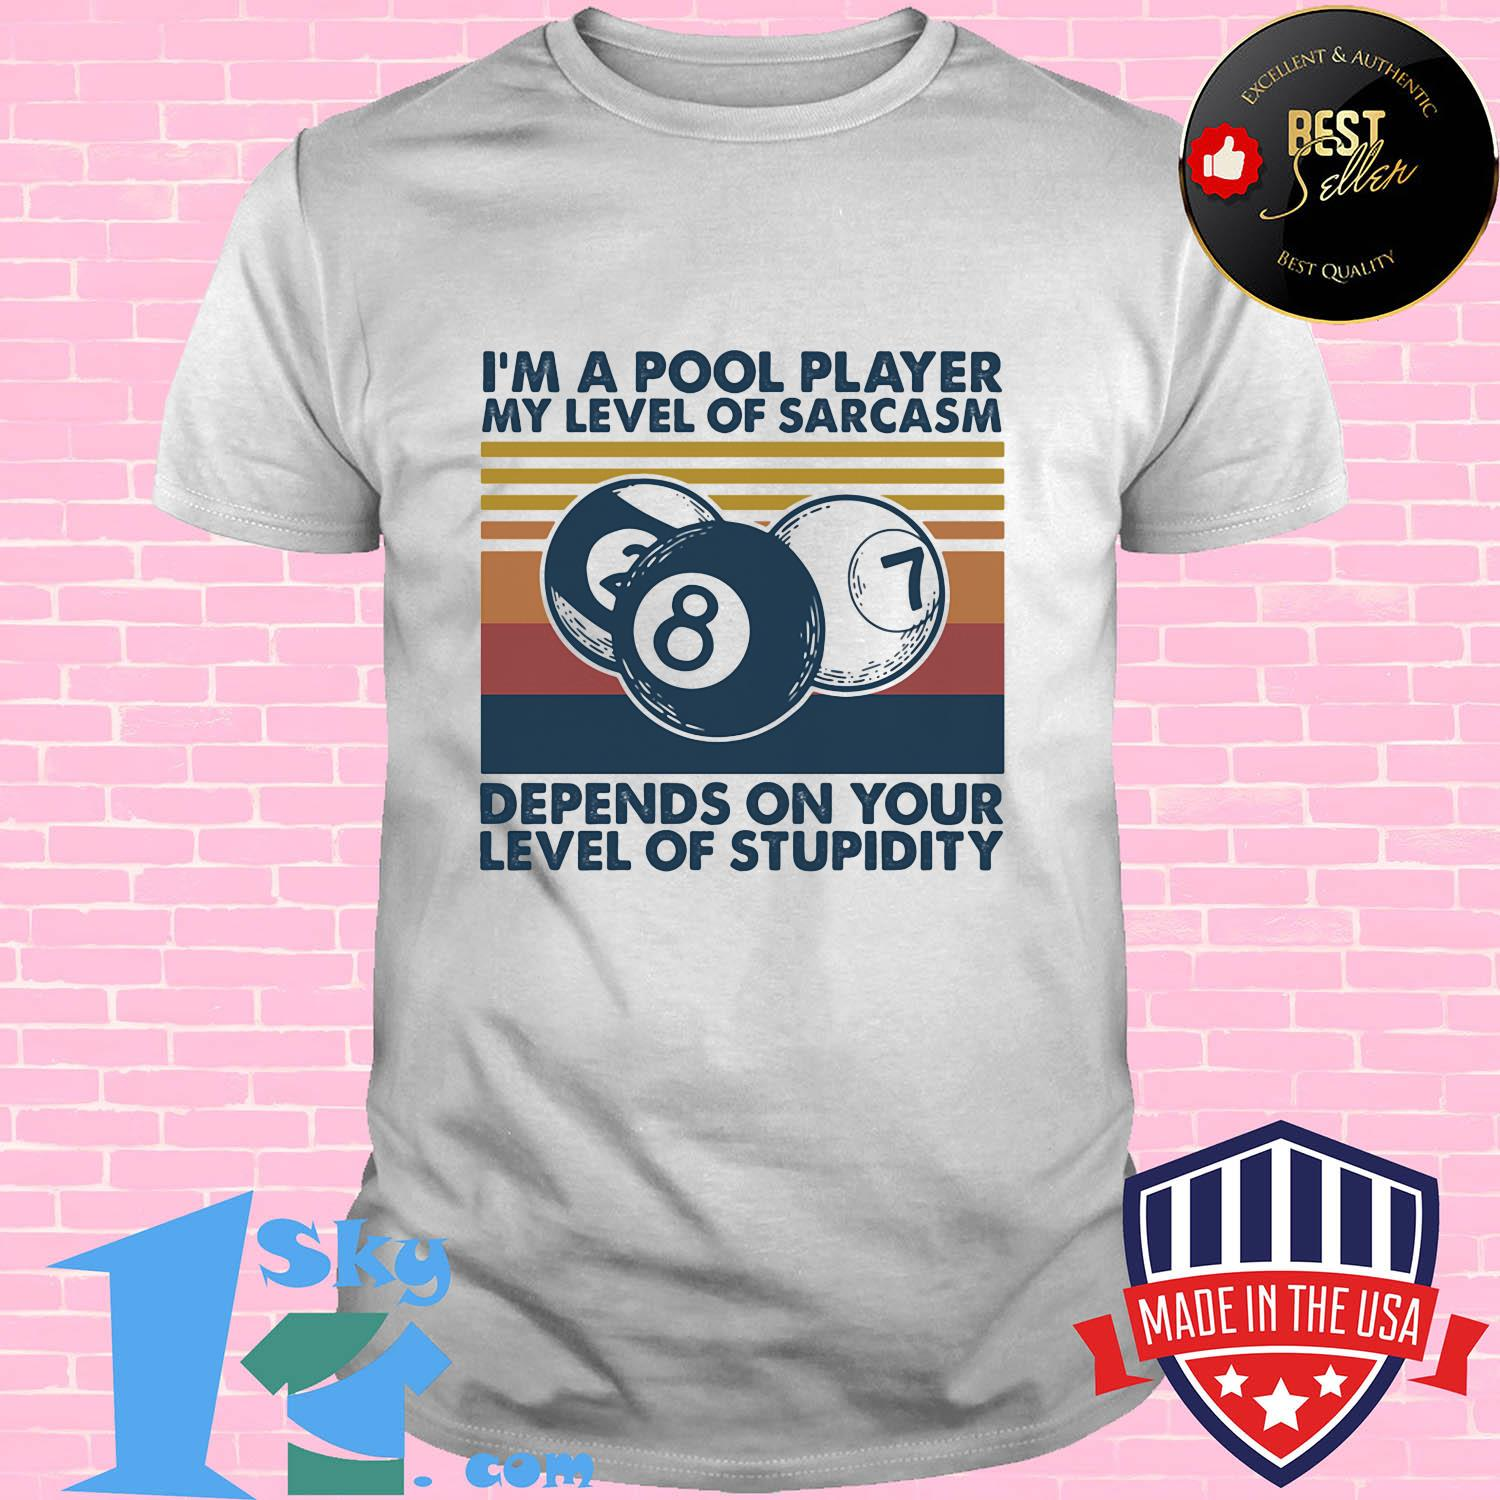 37466745 billiards i m a pool player depends on your level of stupidity vintage shirt unisex - Shop trending - We offer all trend shirts - 1SkyTee